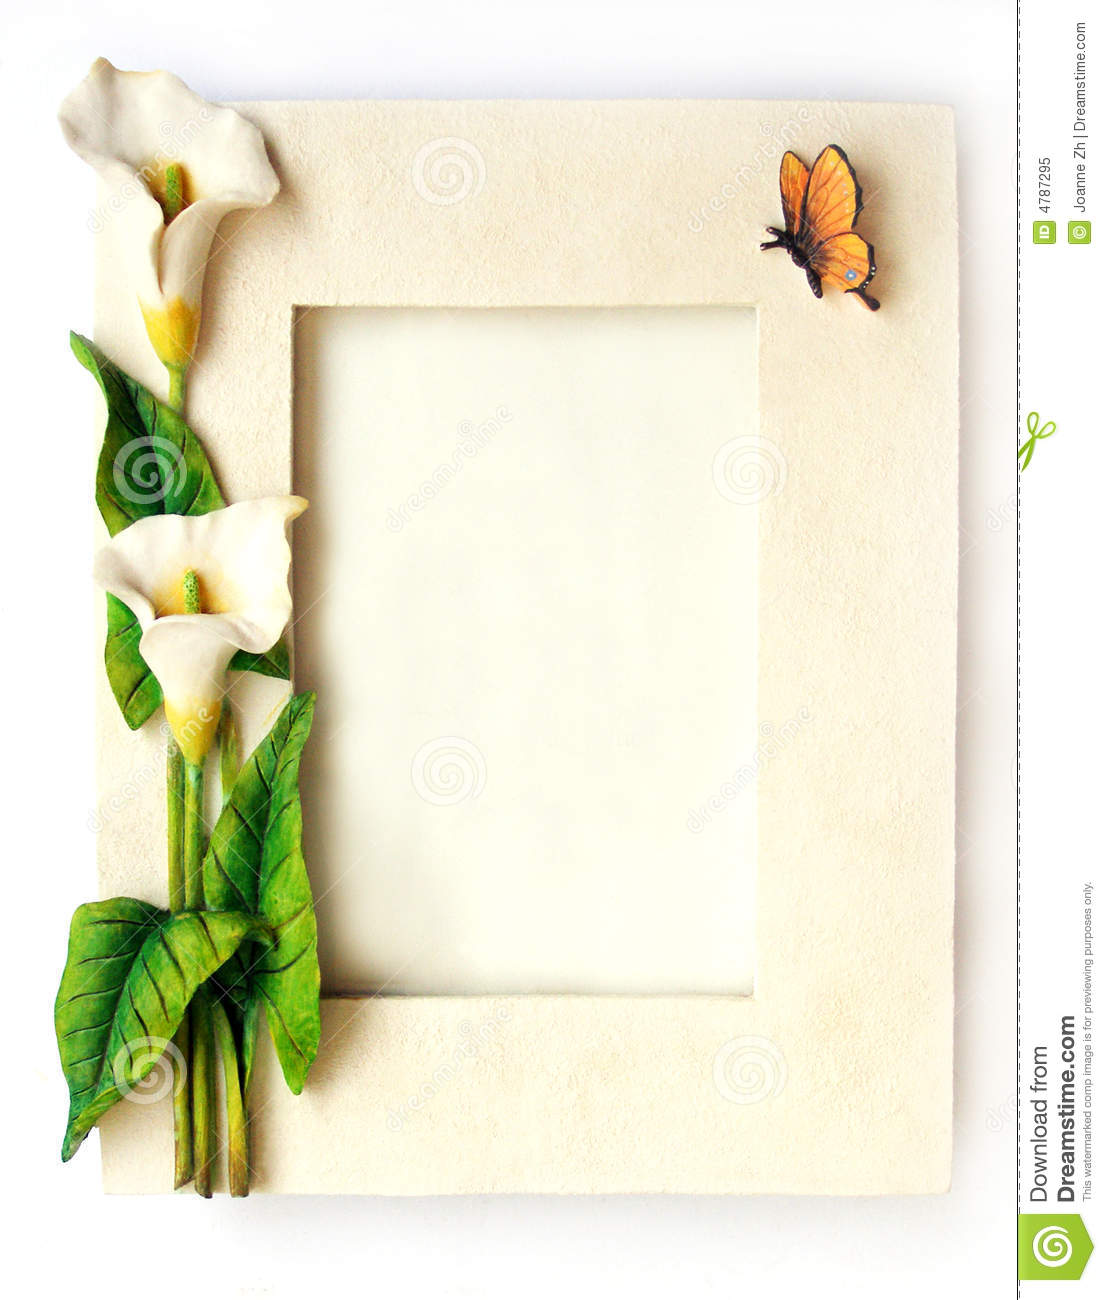 Flowers Frame White Arum Lilies Flower Stock Image Image Of Fancy